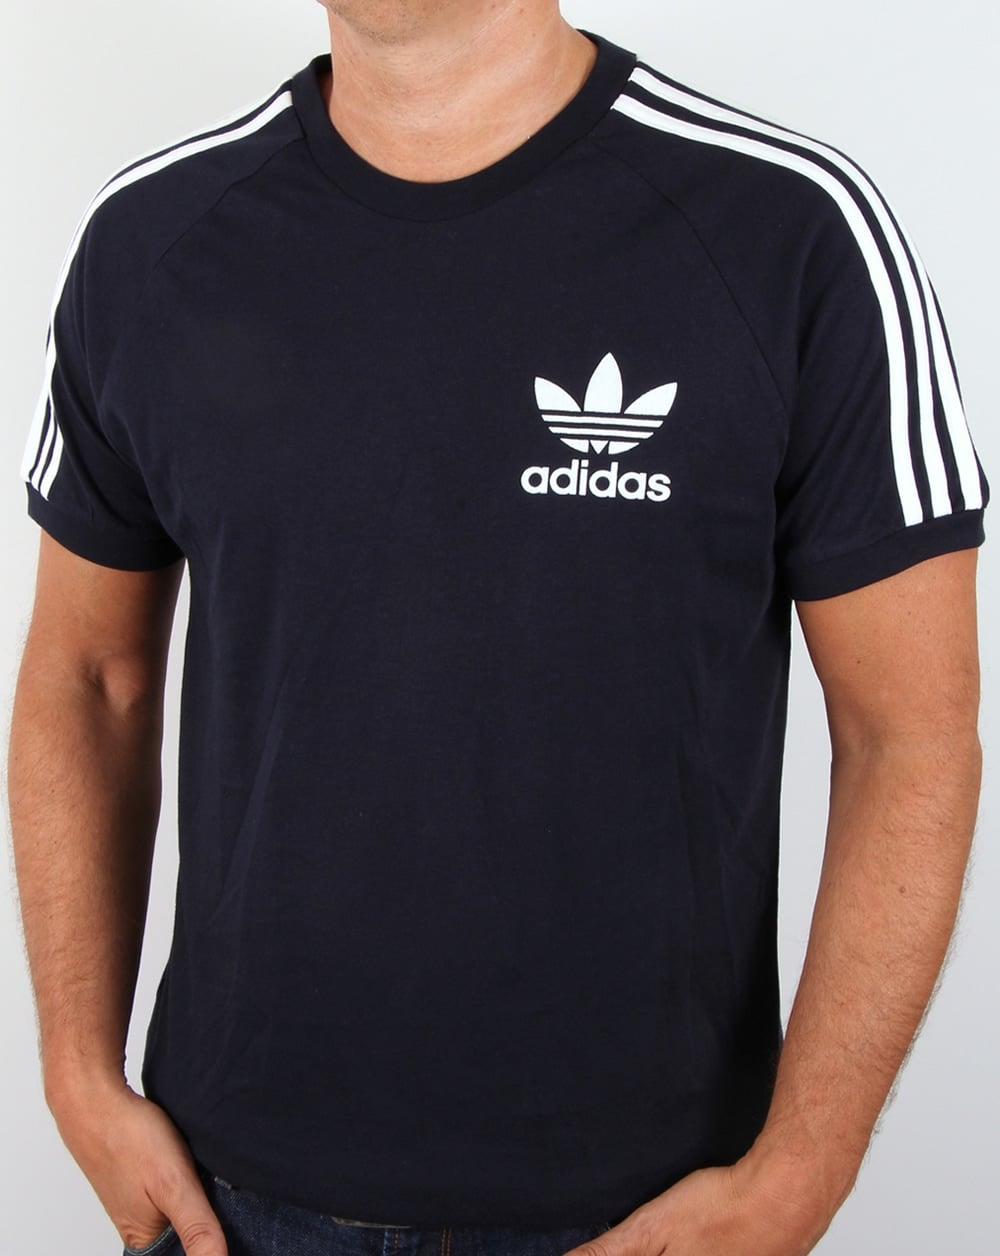 adidas originals retro 3 stripes t shirt navy california. Black Bedroom Furniture Sets. Home Design Ideas